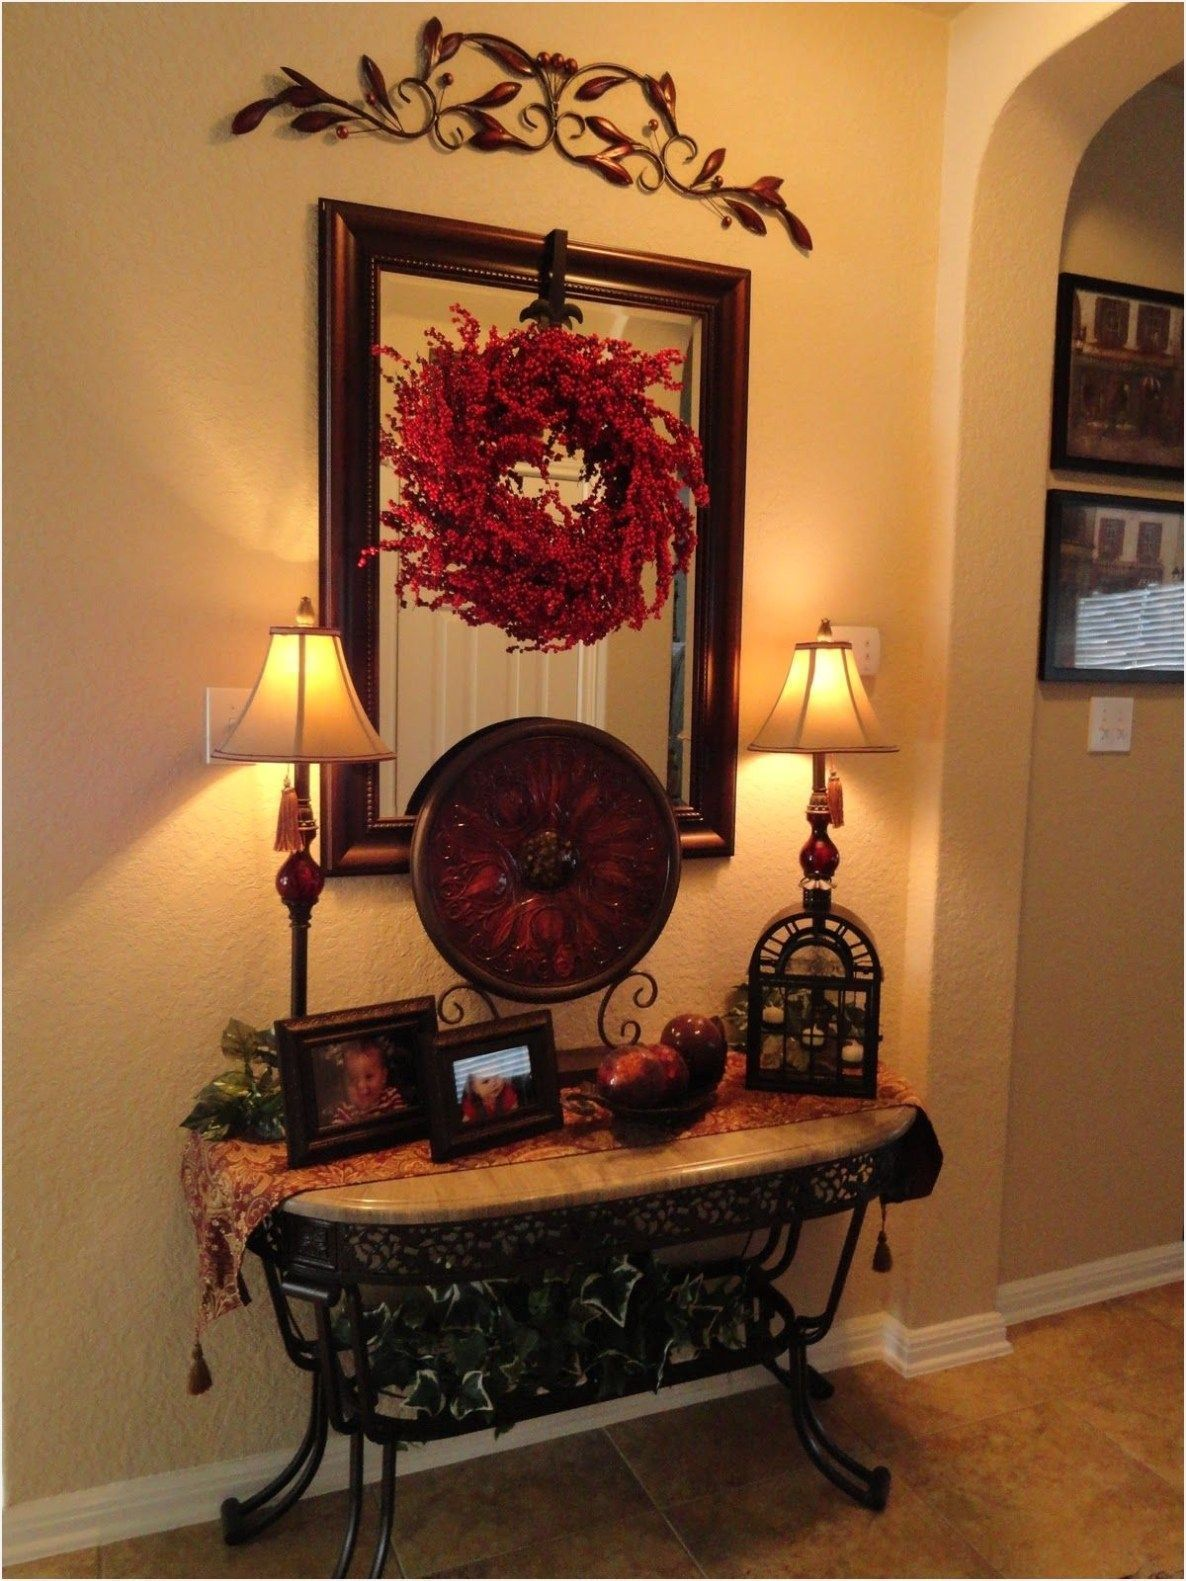 Beau 44 Amazing Ideas French Entryway Decor 91 Love Foyer Table Tuscan Style The  Iron Accents 3